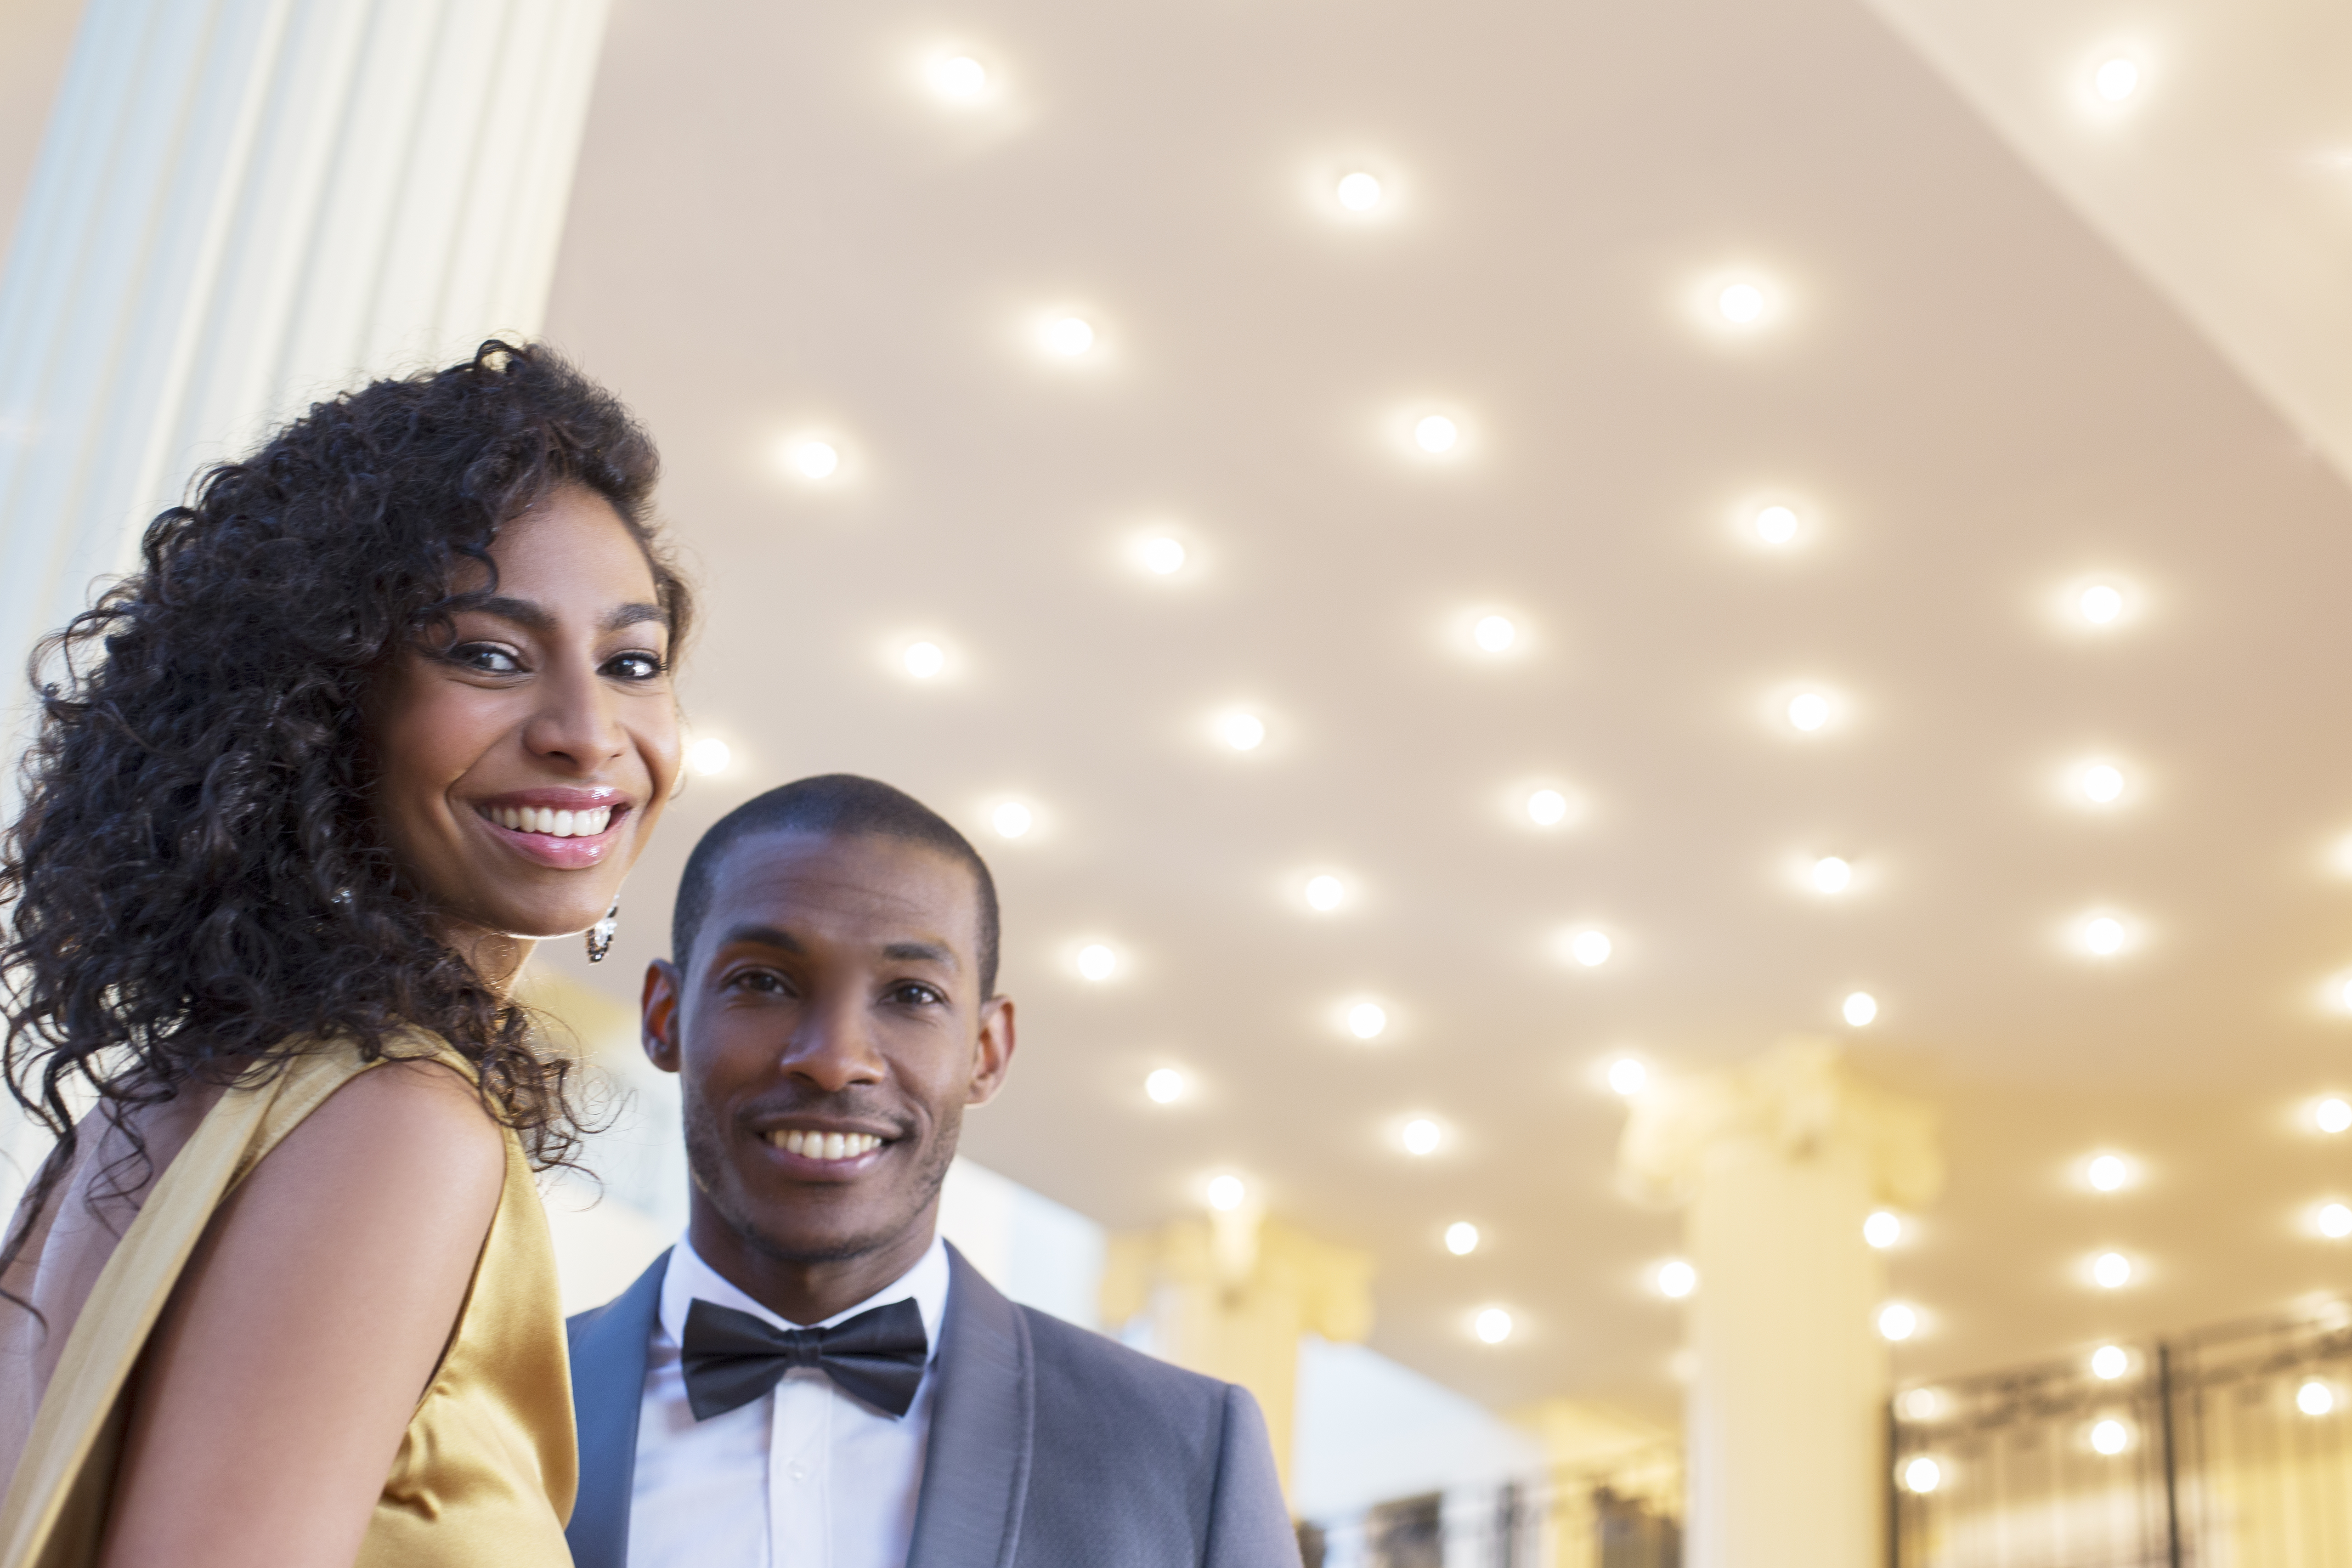 Portrait of well dressed smiling couple